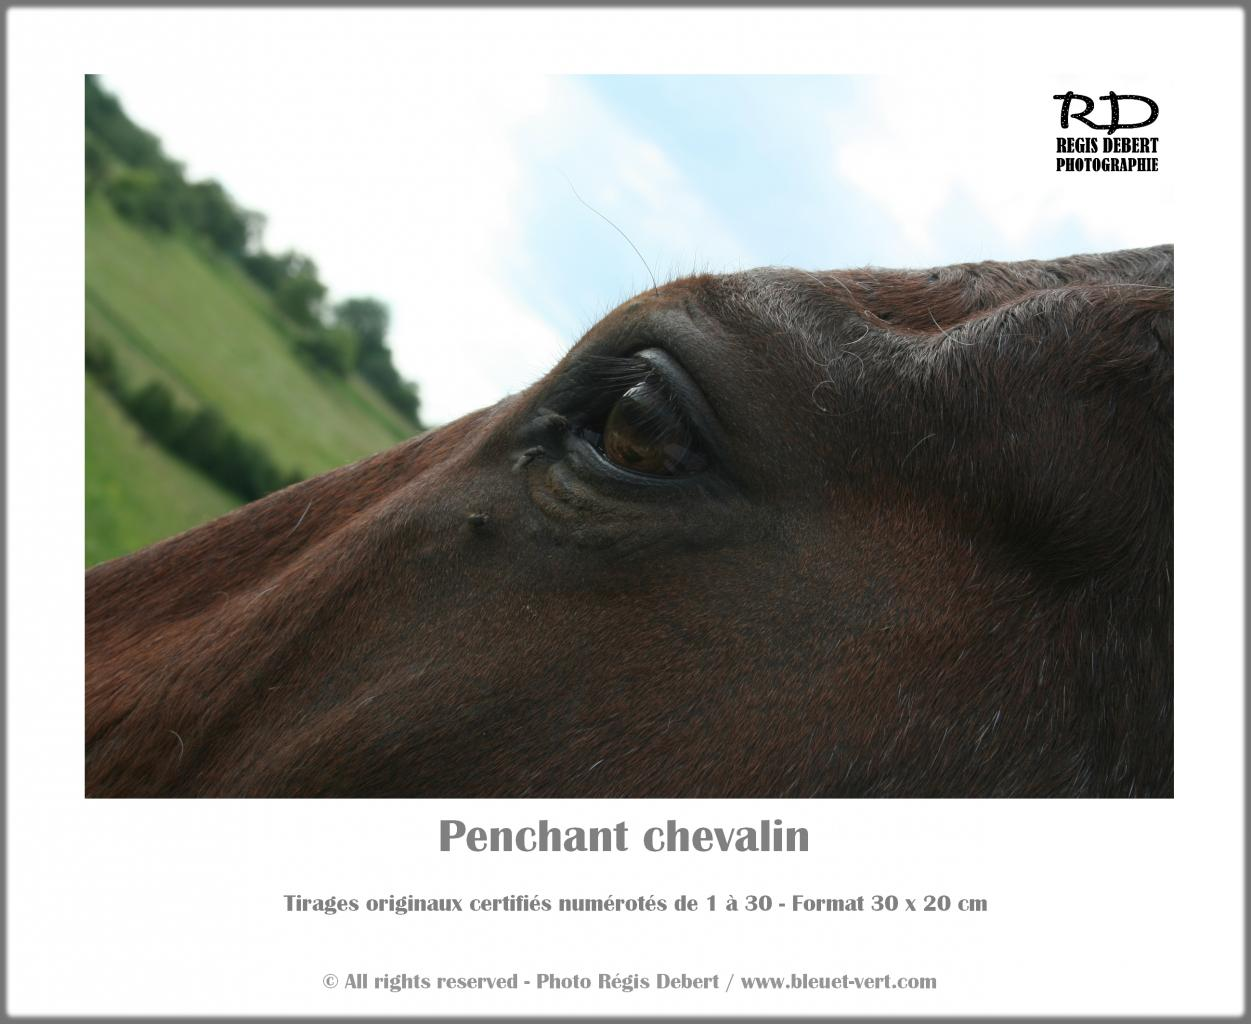 Penchant chevalin